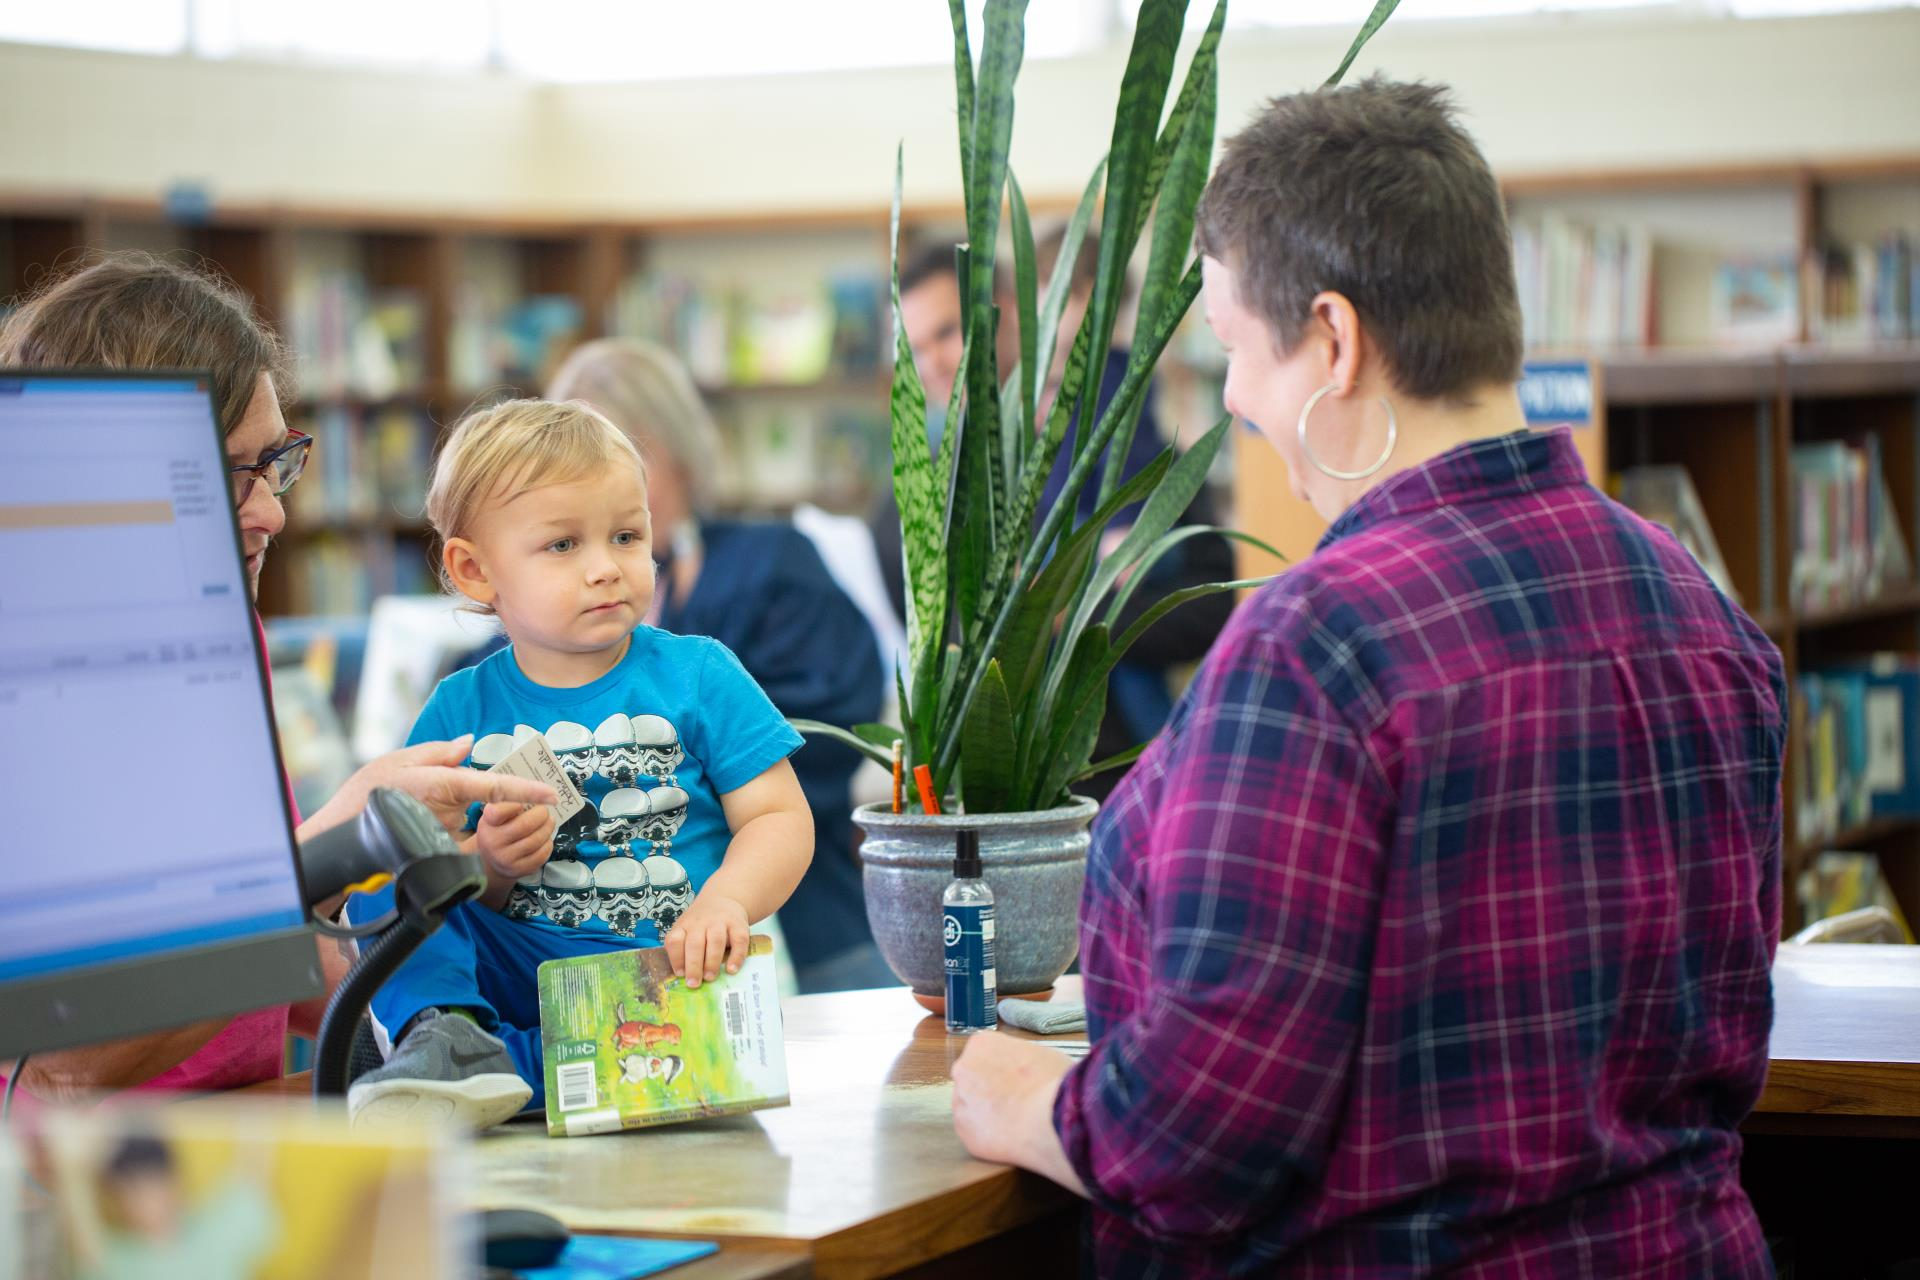 Image of Child checking out a book at library